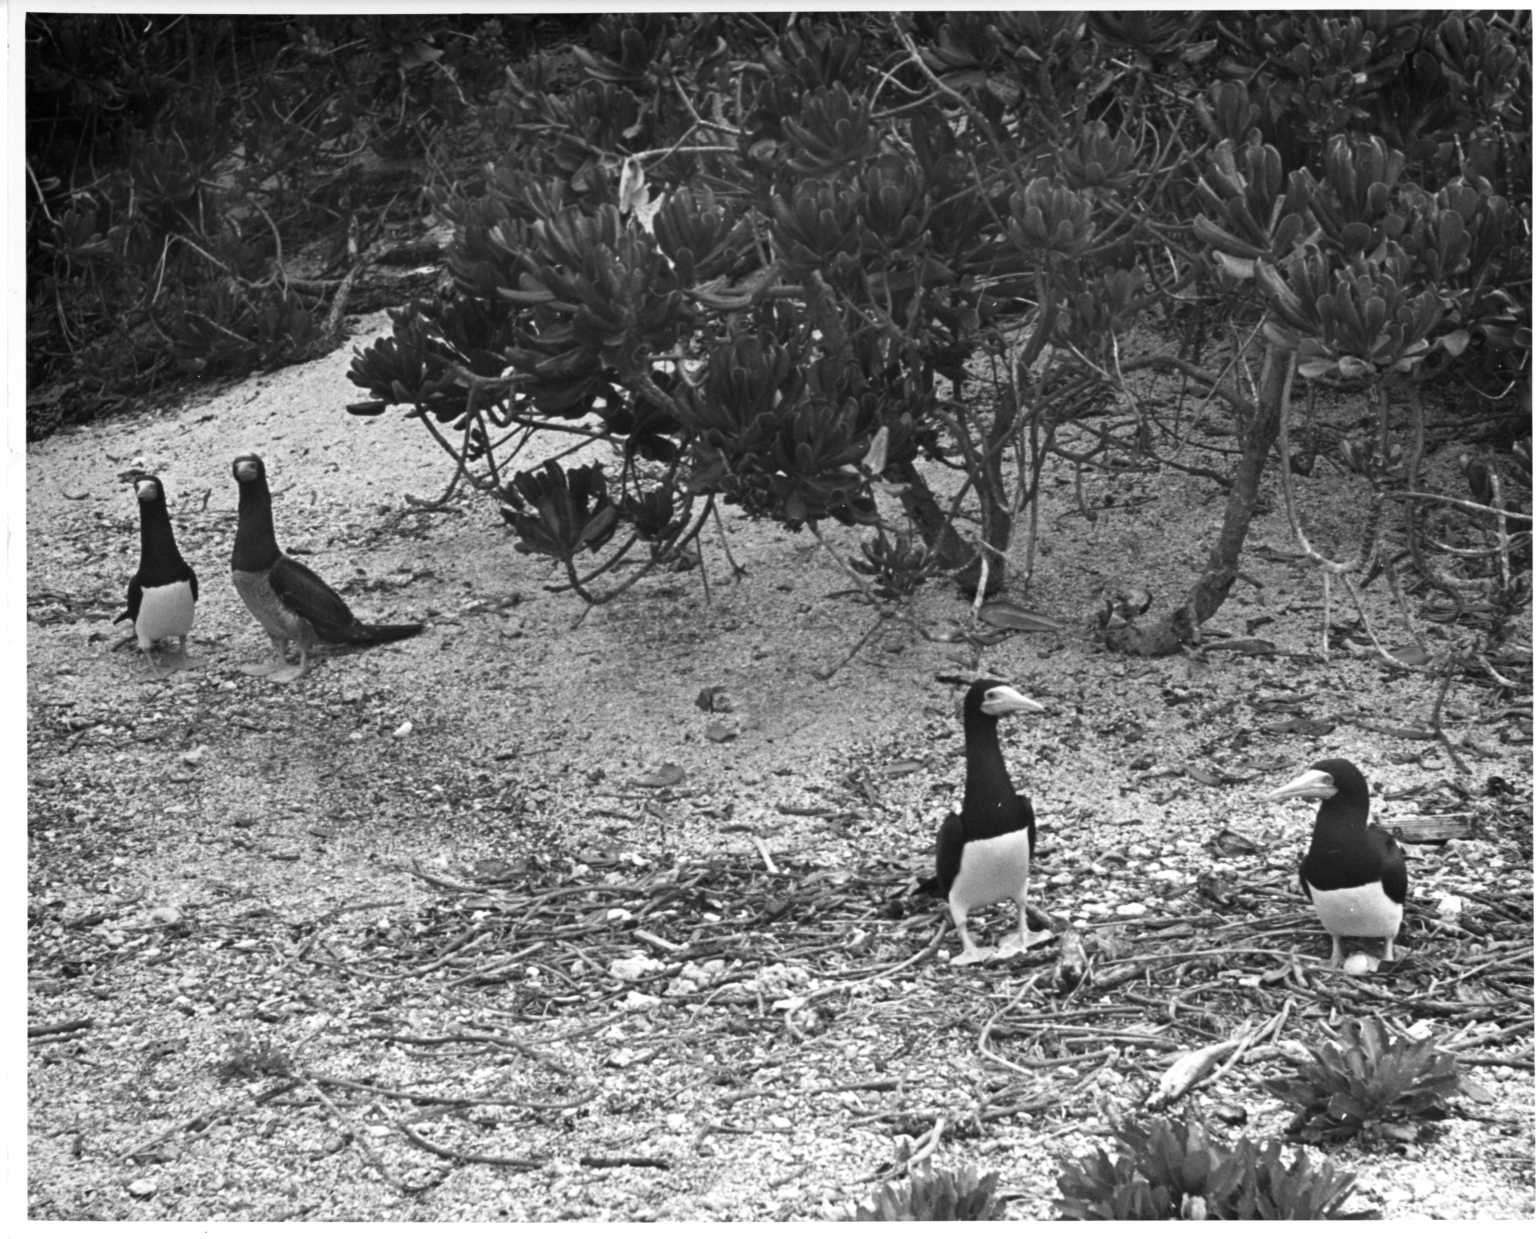 Brown booby and egg